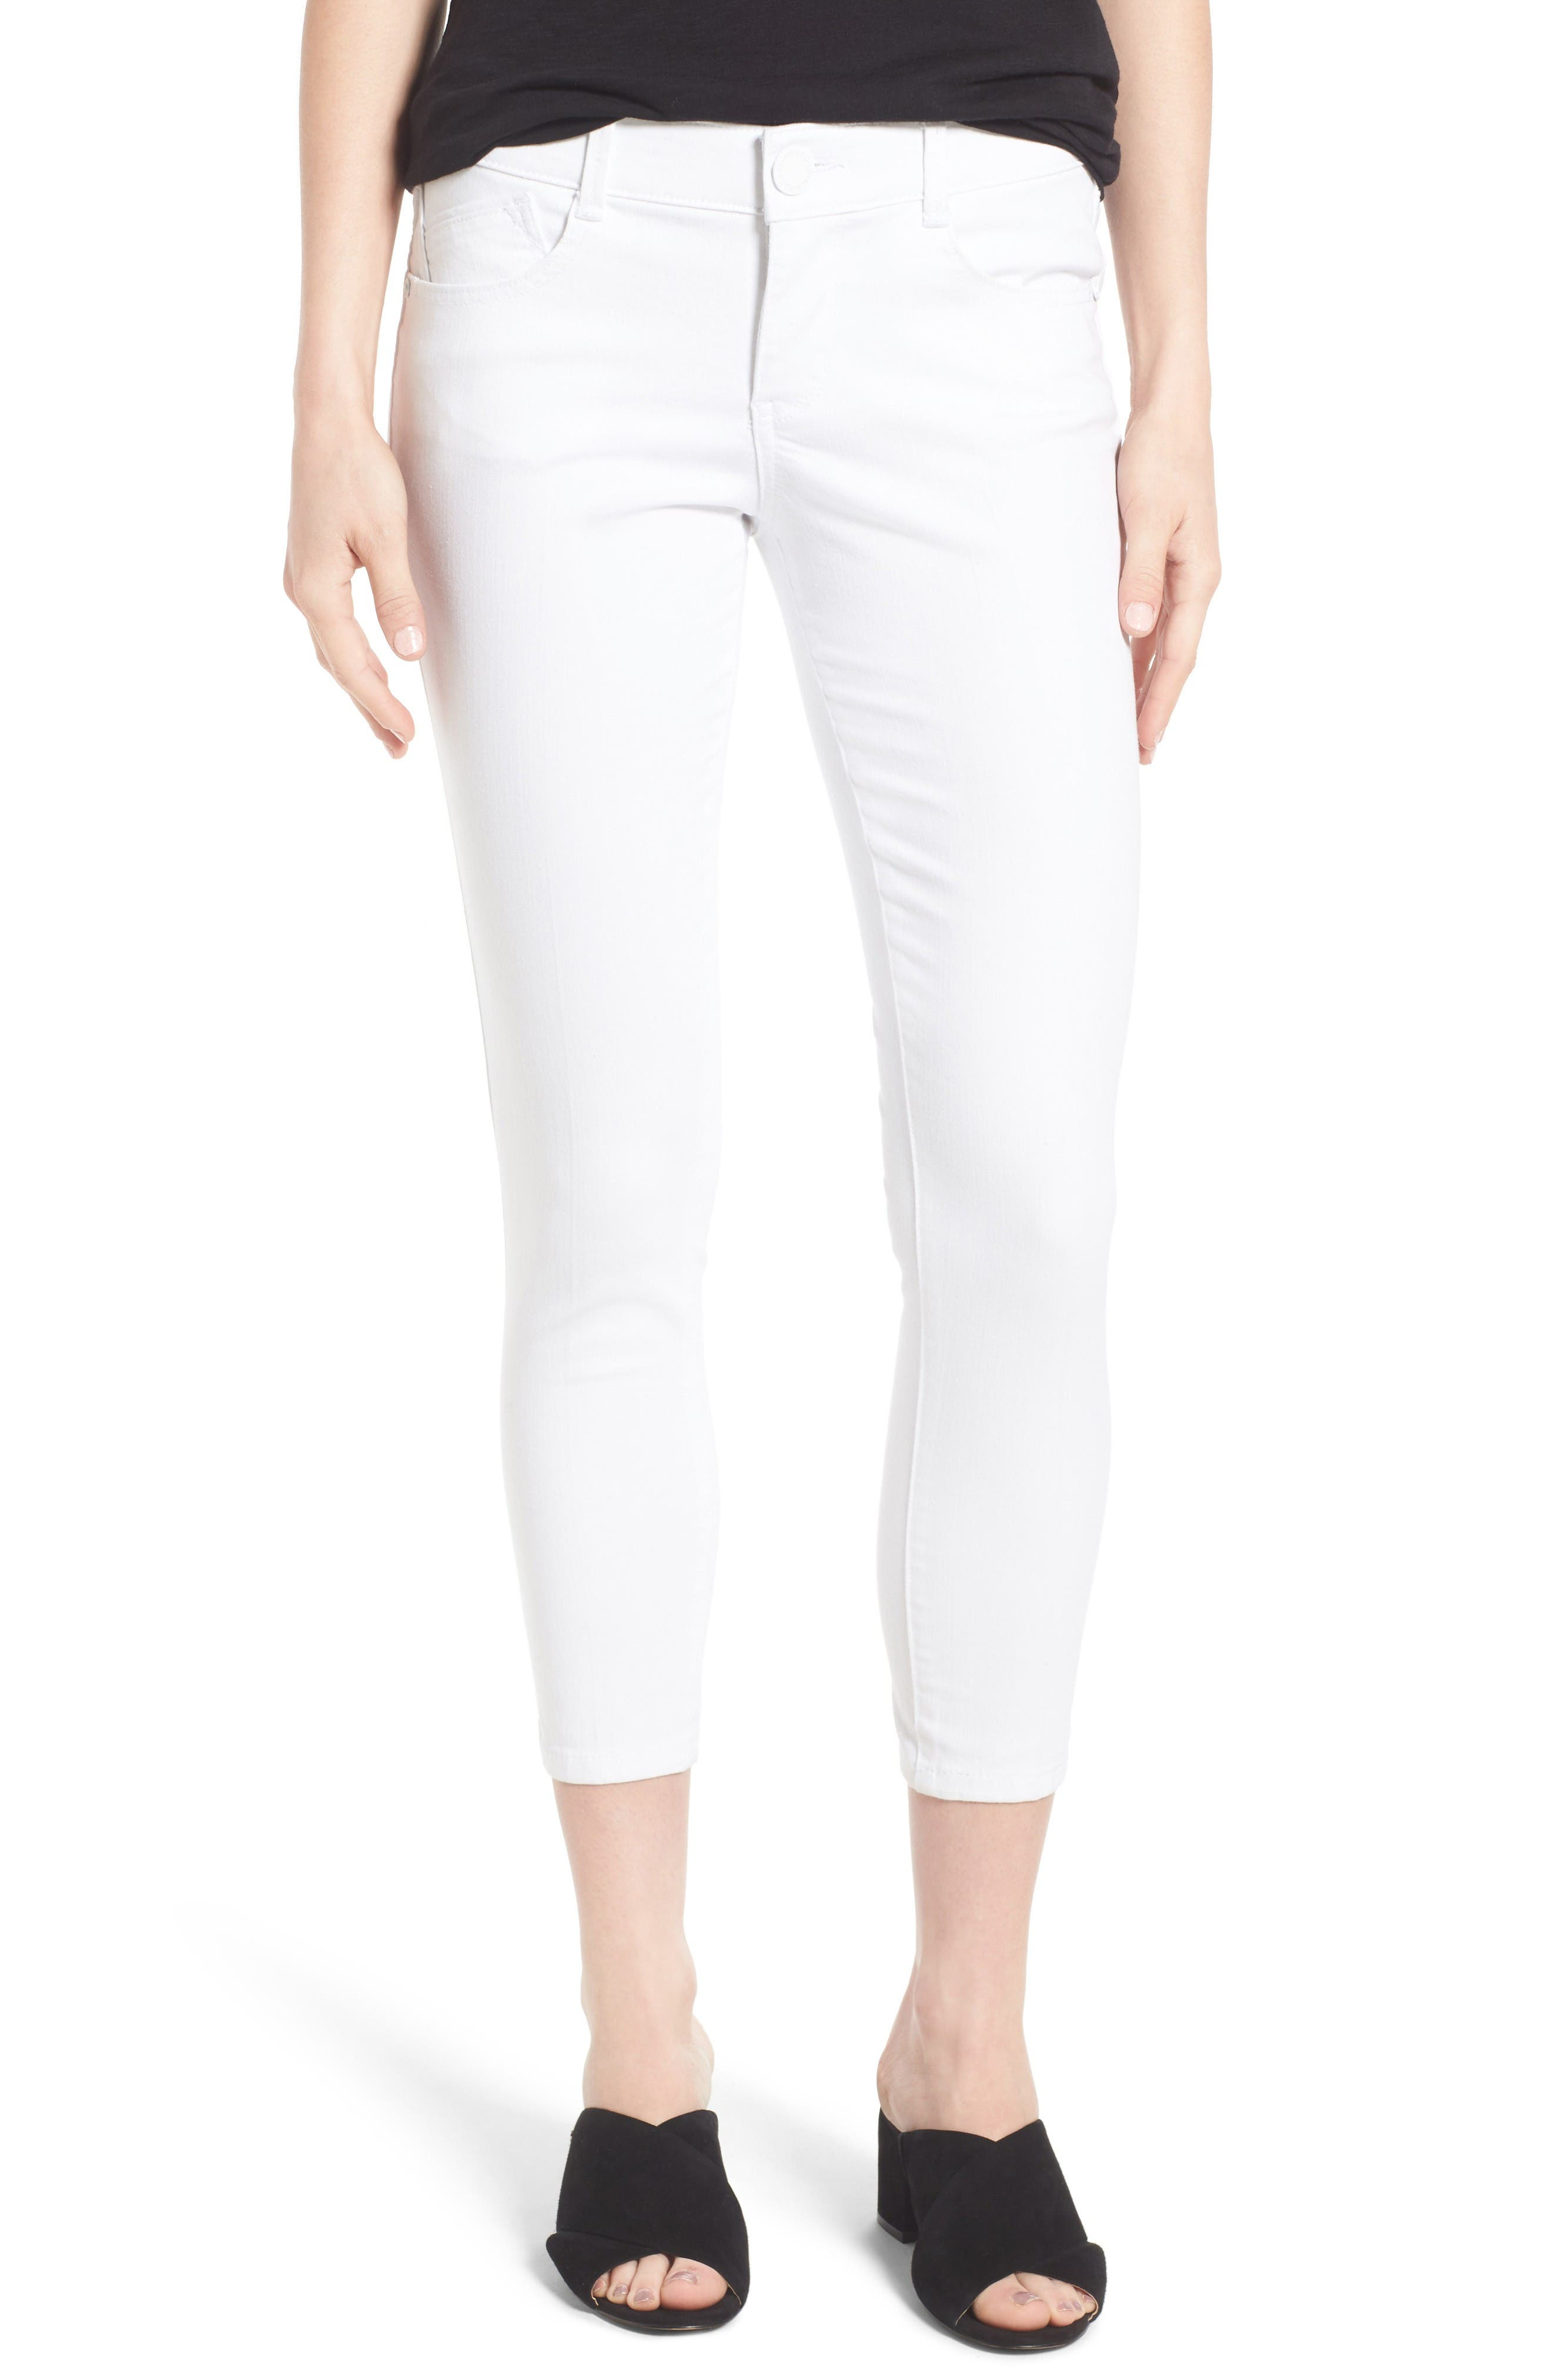 Ab-solution Skinny Crop Jeans,                         Main,                         color, Optic White